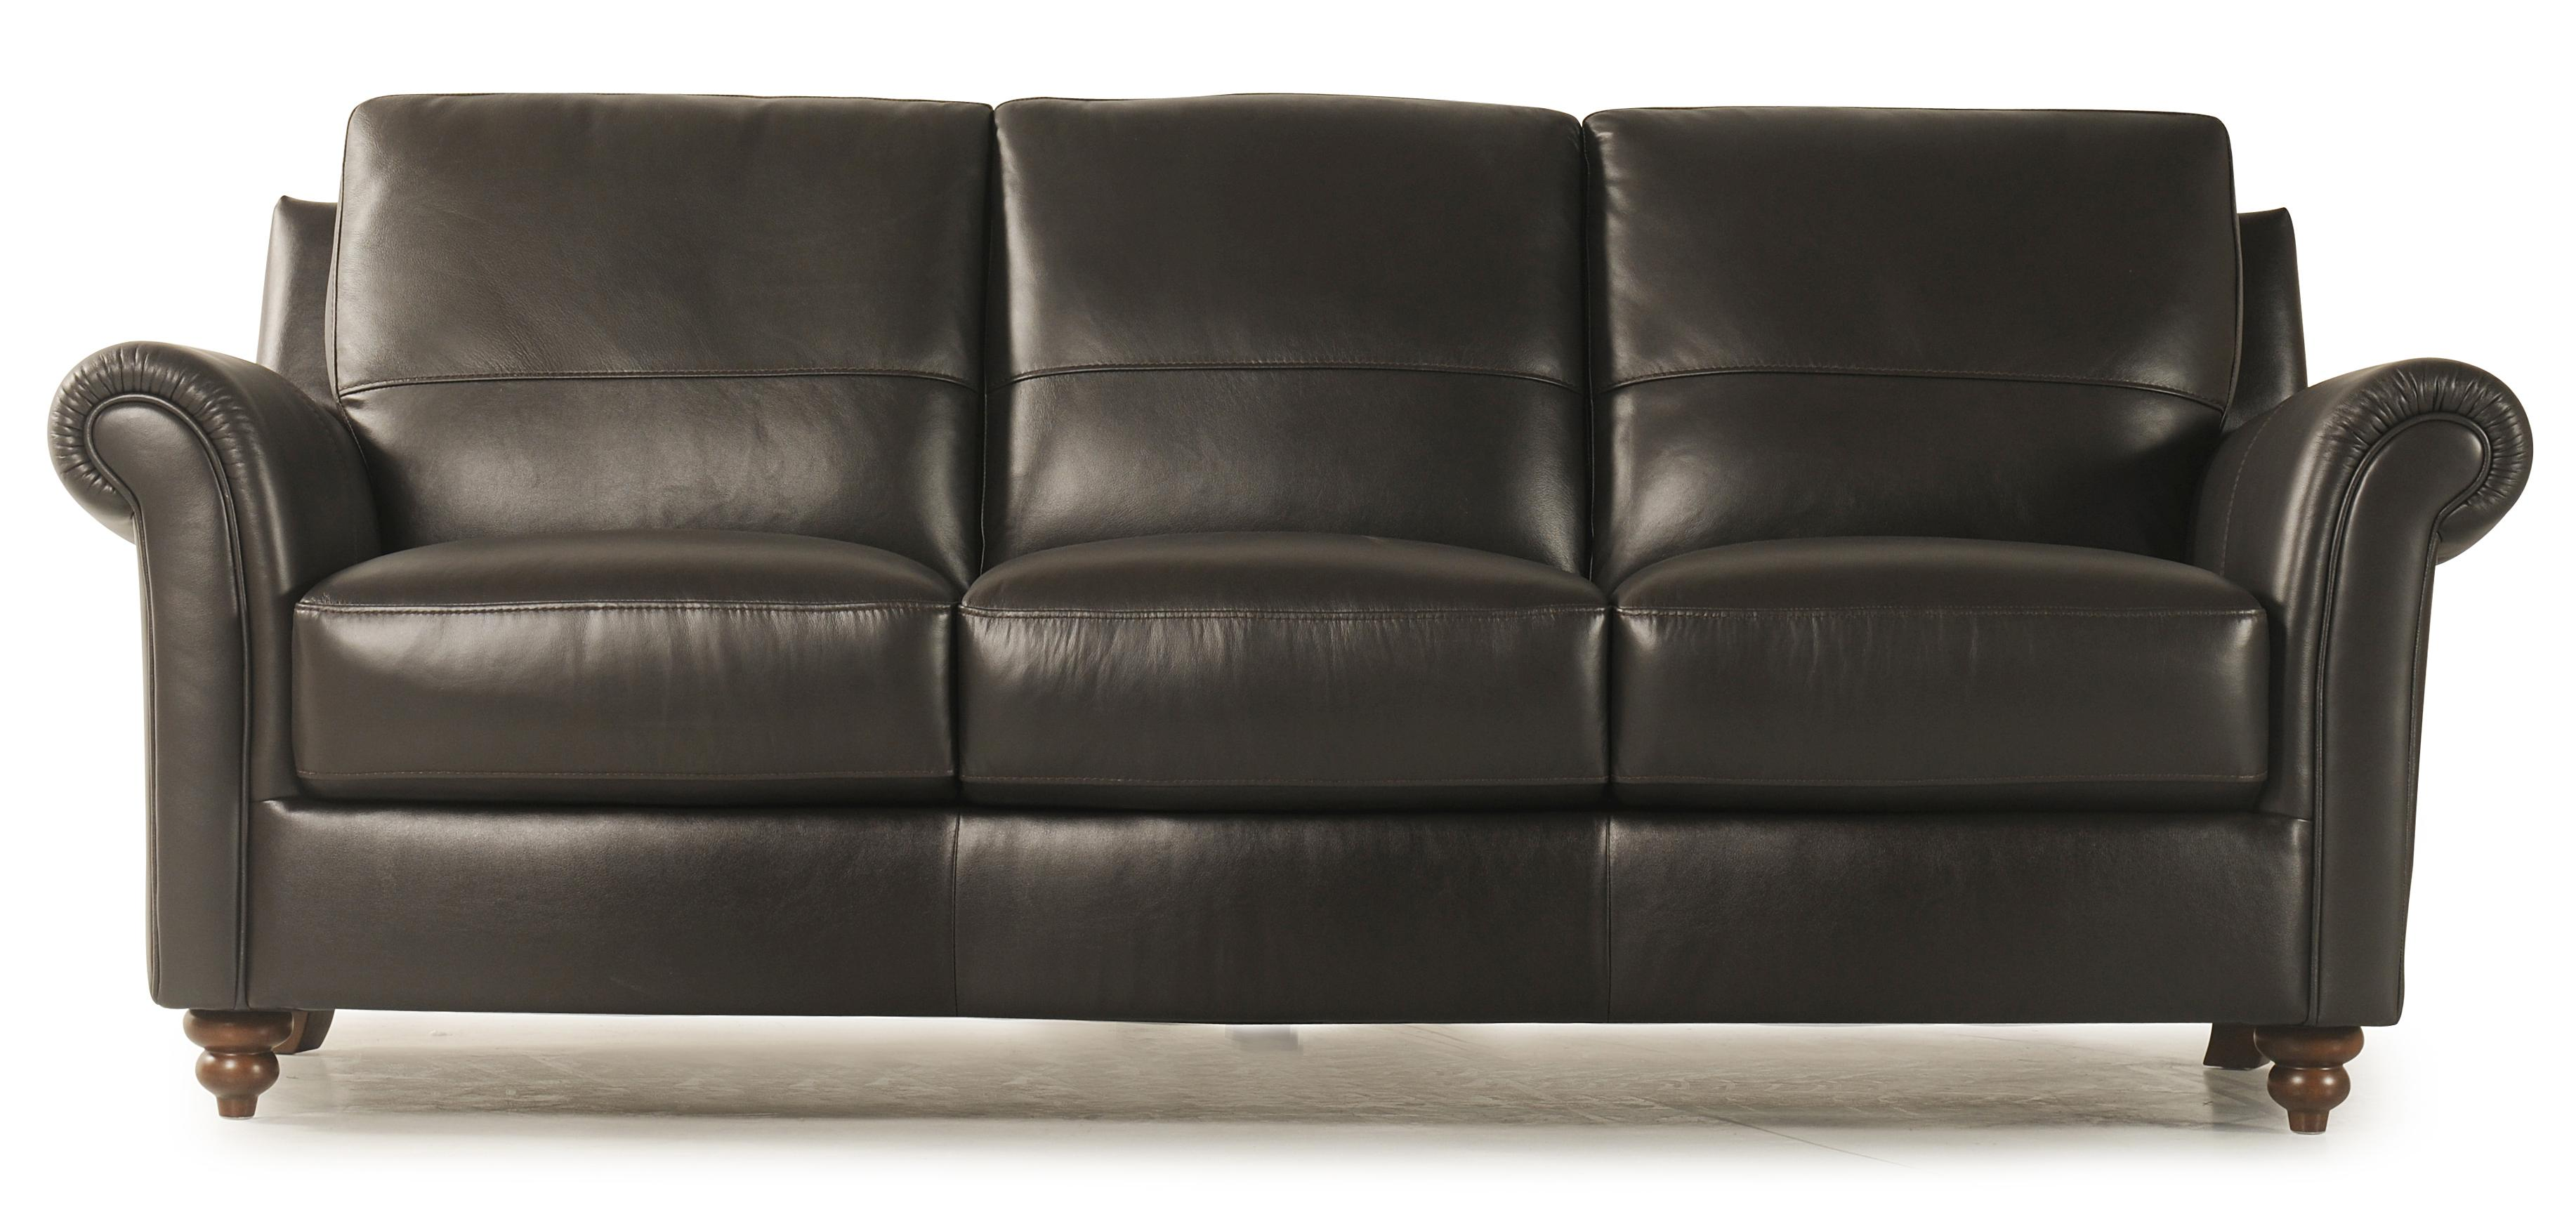 Grady Sofa by Violino at Furniture Superstore - Rochester, MN